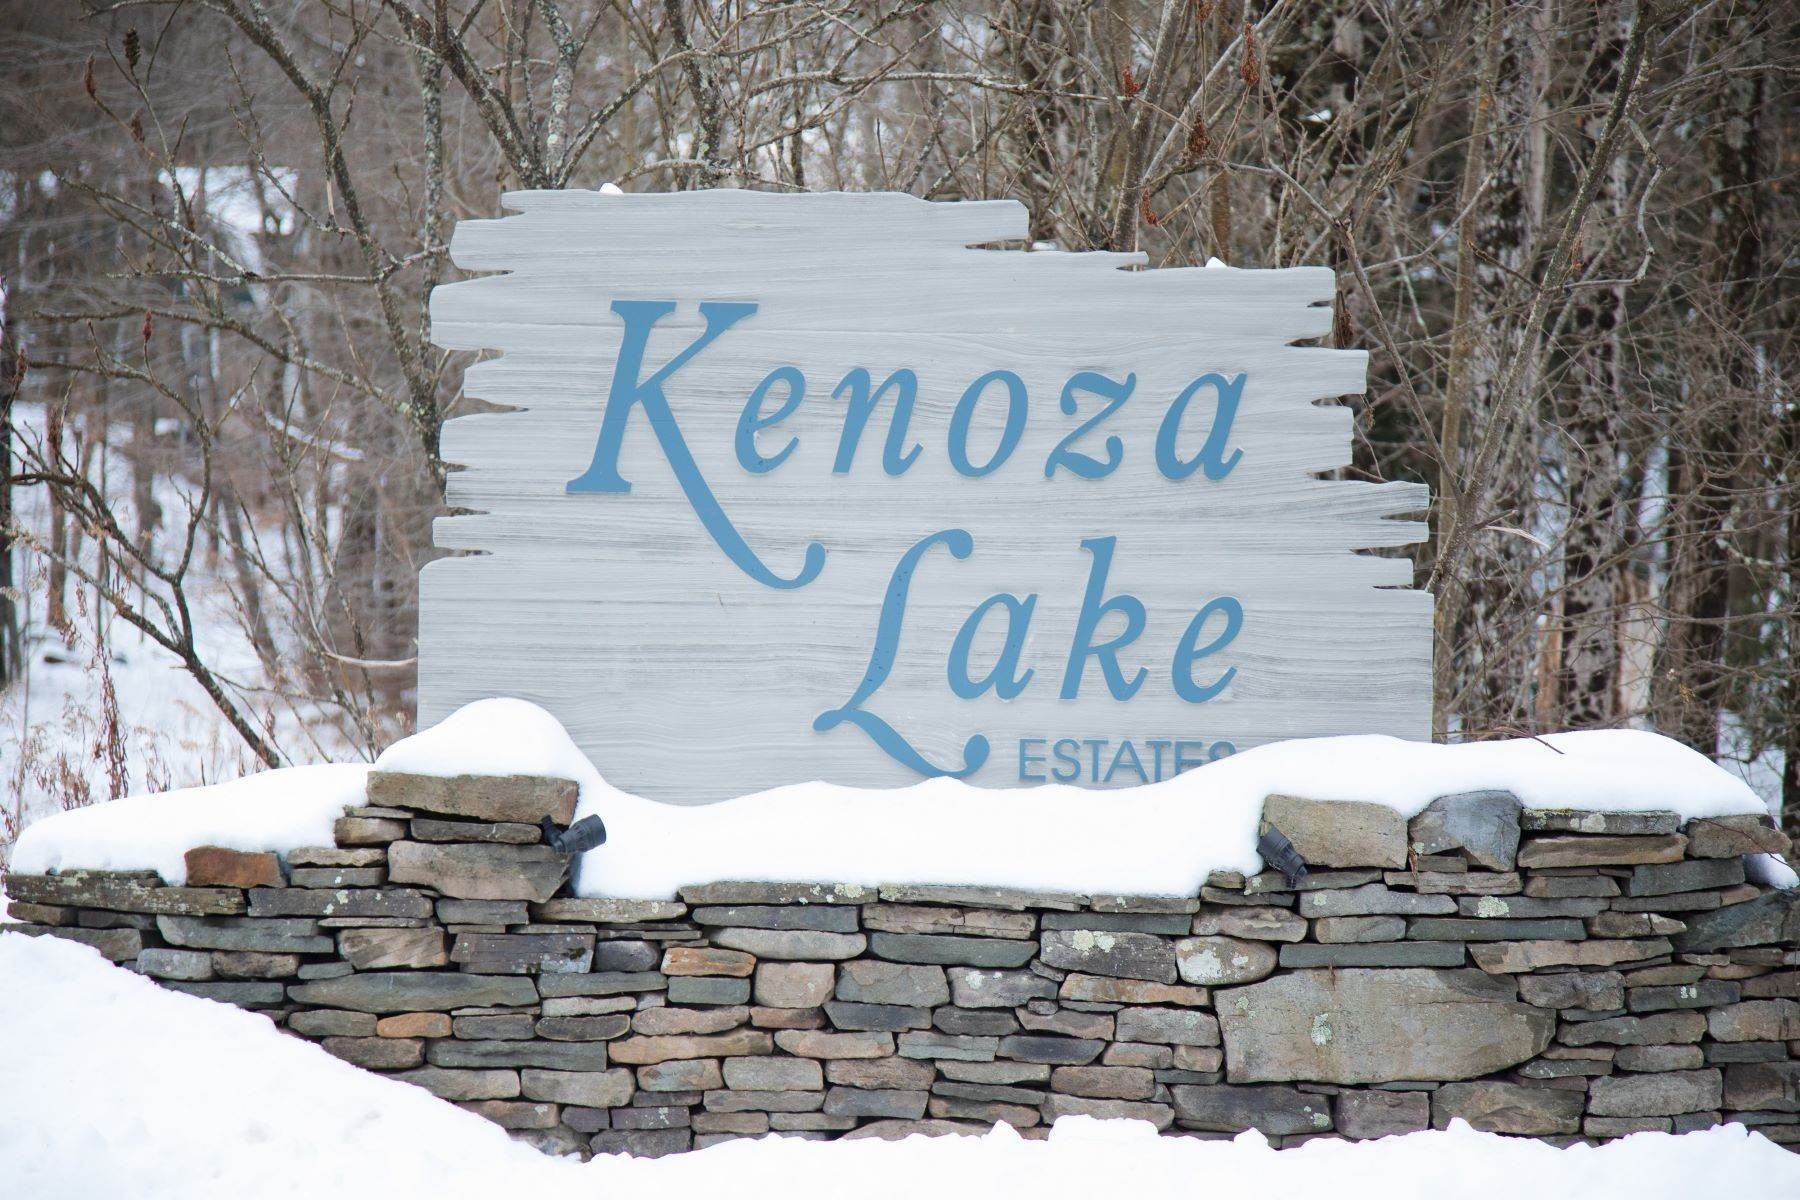 34. Single Family Homes for Sale at Cabin by the Lake at Kenoza Lake Estates 220 Kenoza Trail Kenoza Lake, New York 12750 United States